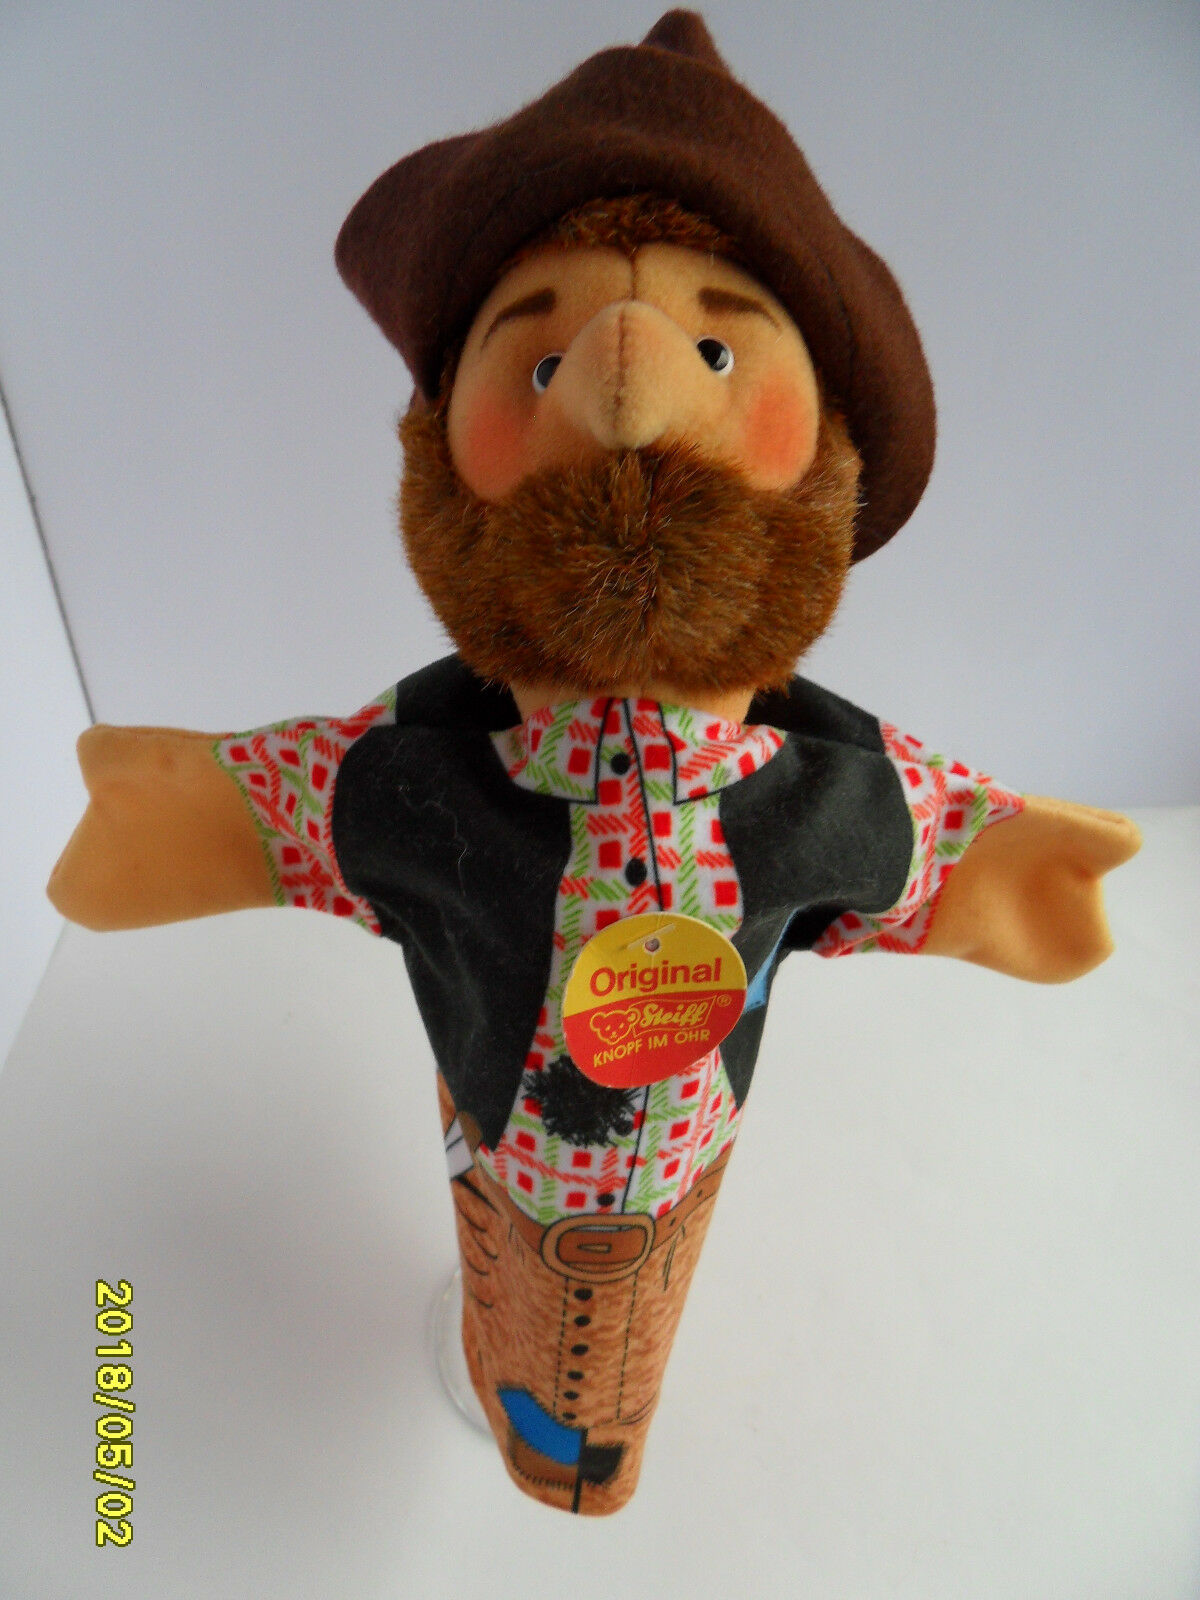 Steiff doll doll doll robber hand puppet all IDs stuffed animal made in Germany 2633 c110c6